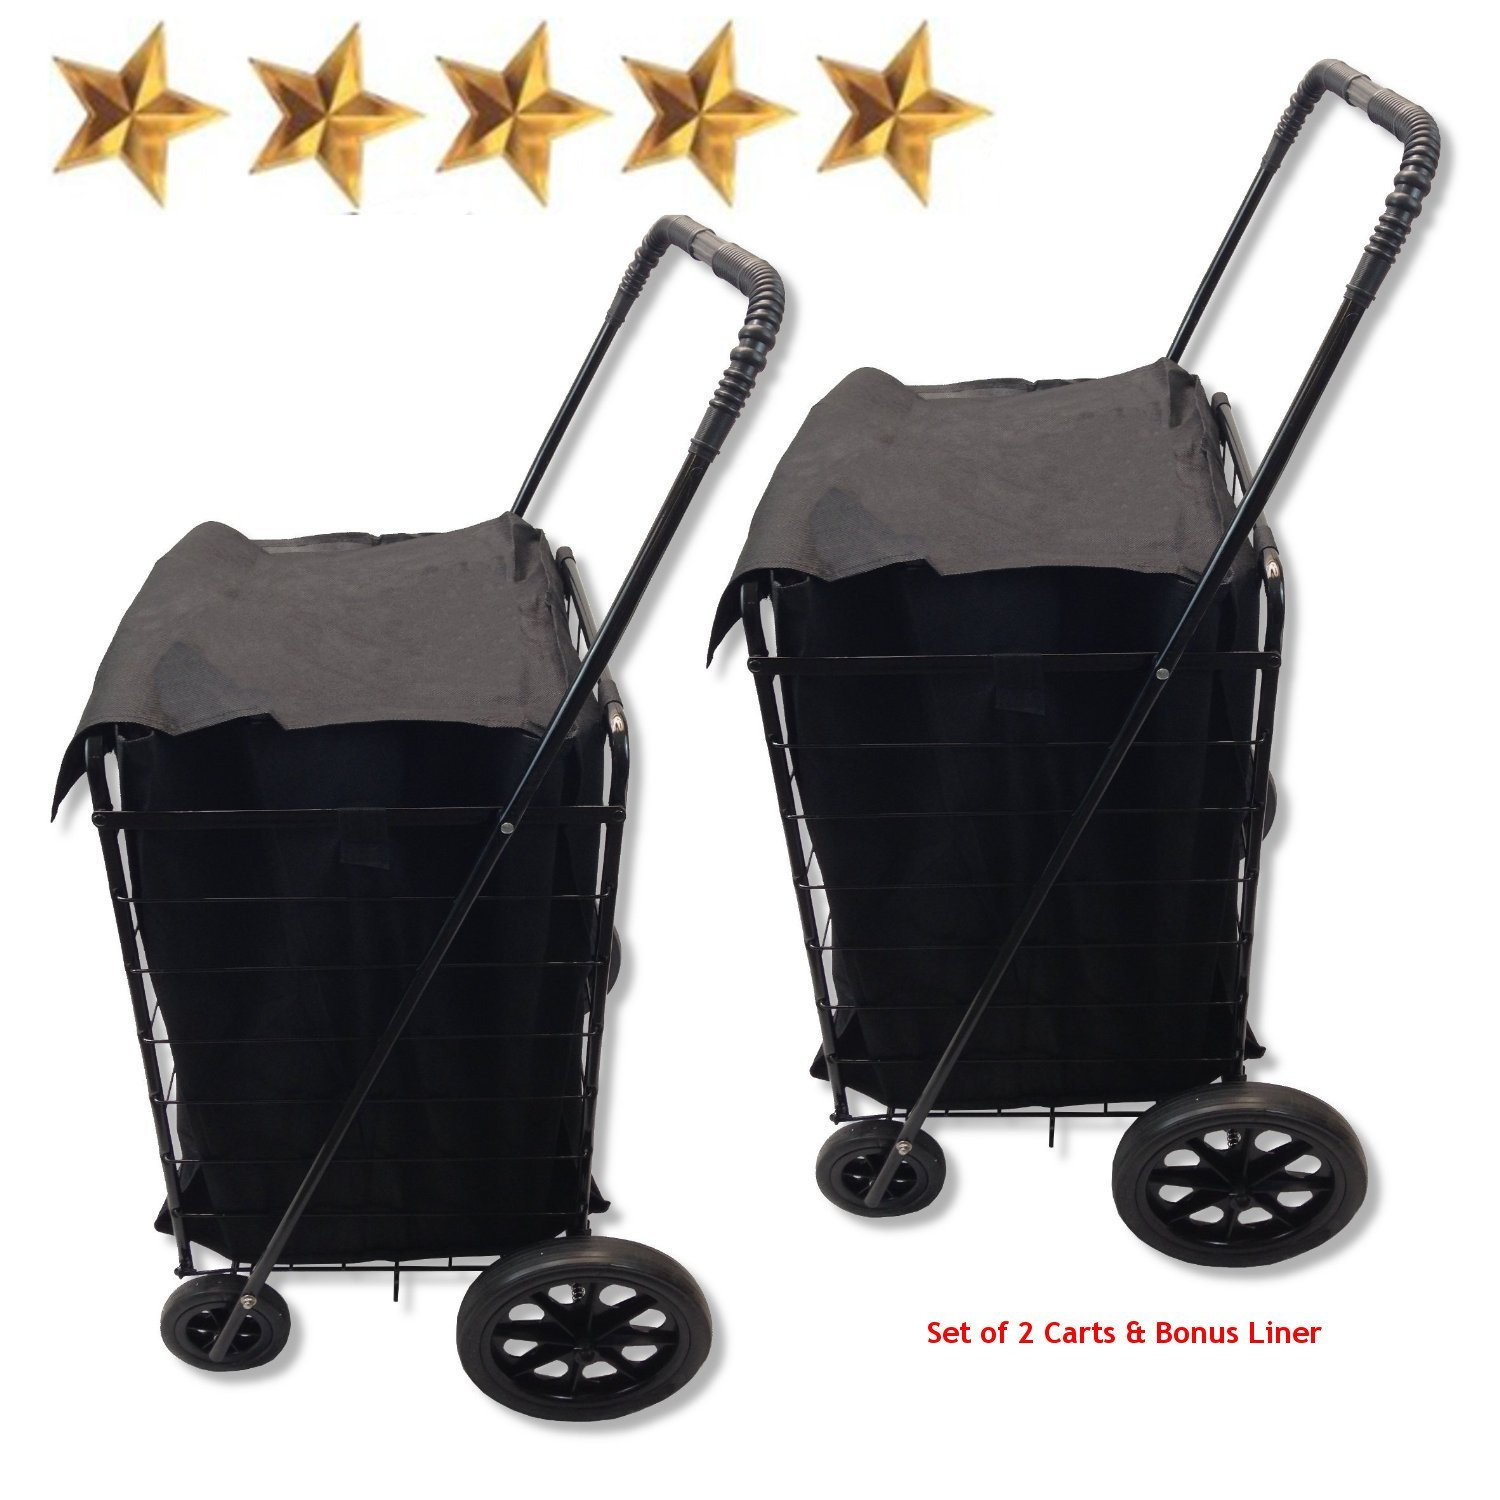 Set of 2 Extra Large Heavy-Duty Black Folding Utility Cart Folds Up Rolling Storage Shopping Carrier from SCF (BLACK) with BONUS LINER